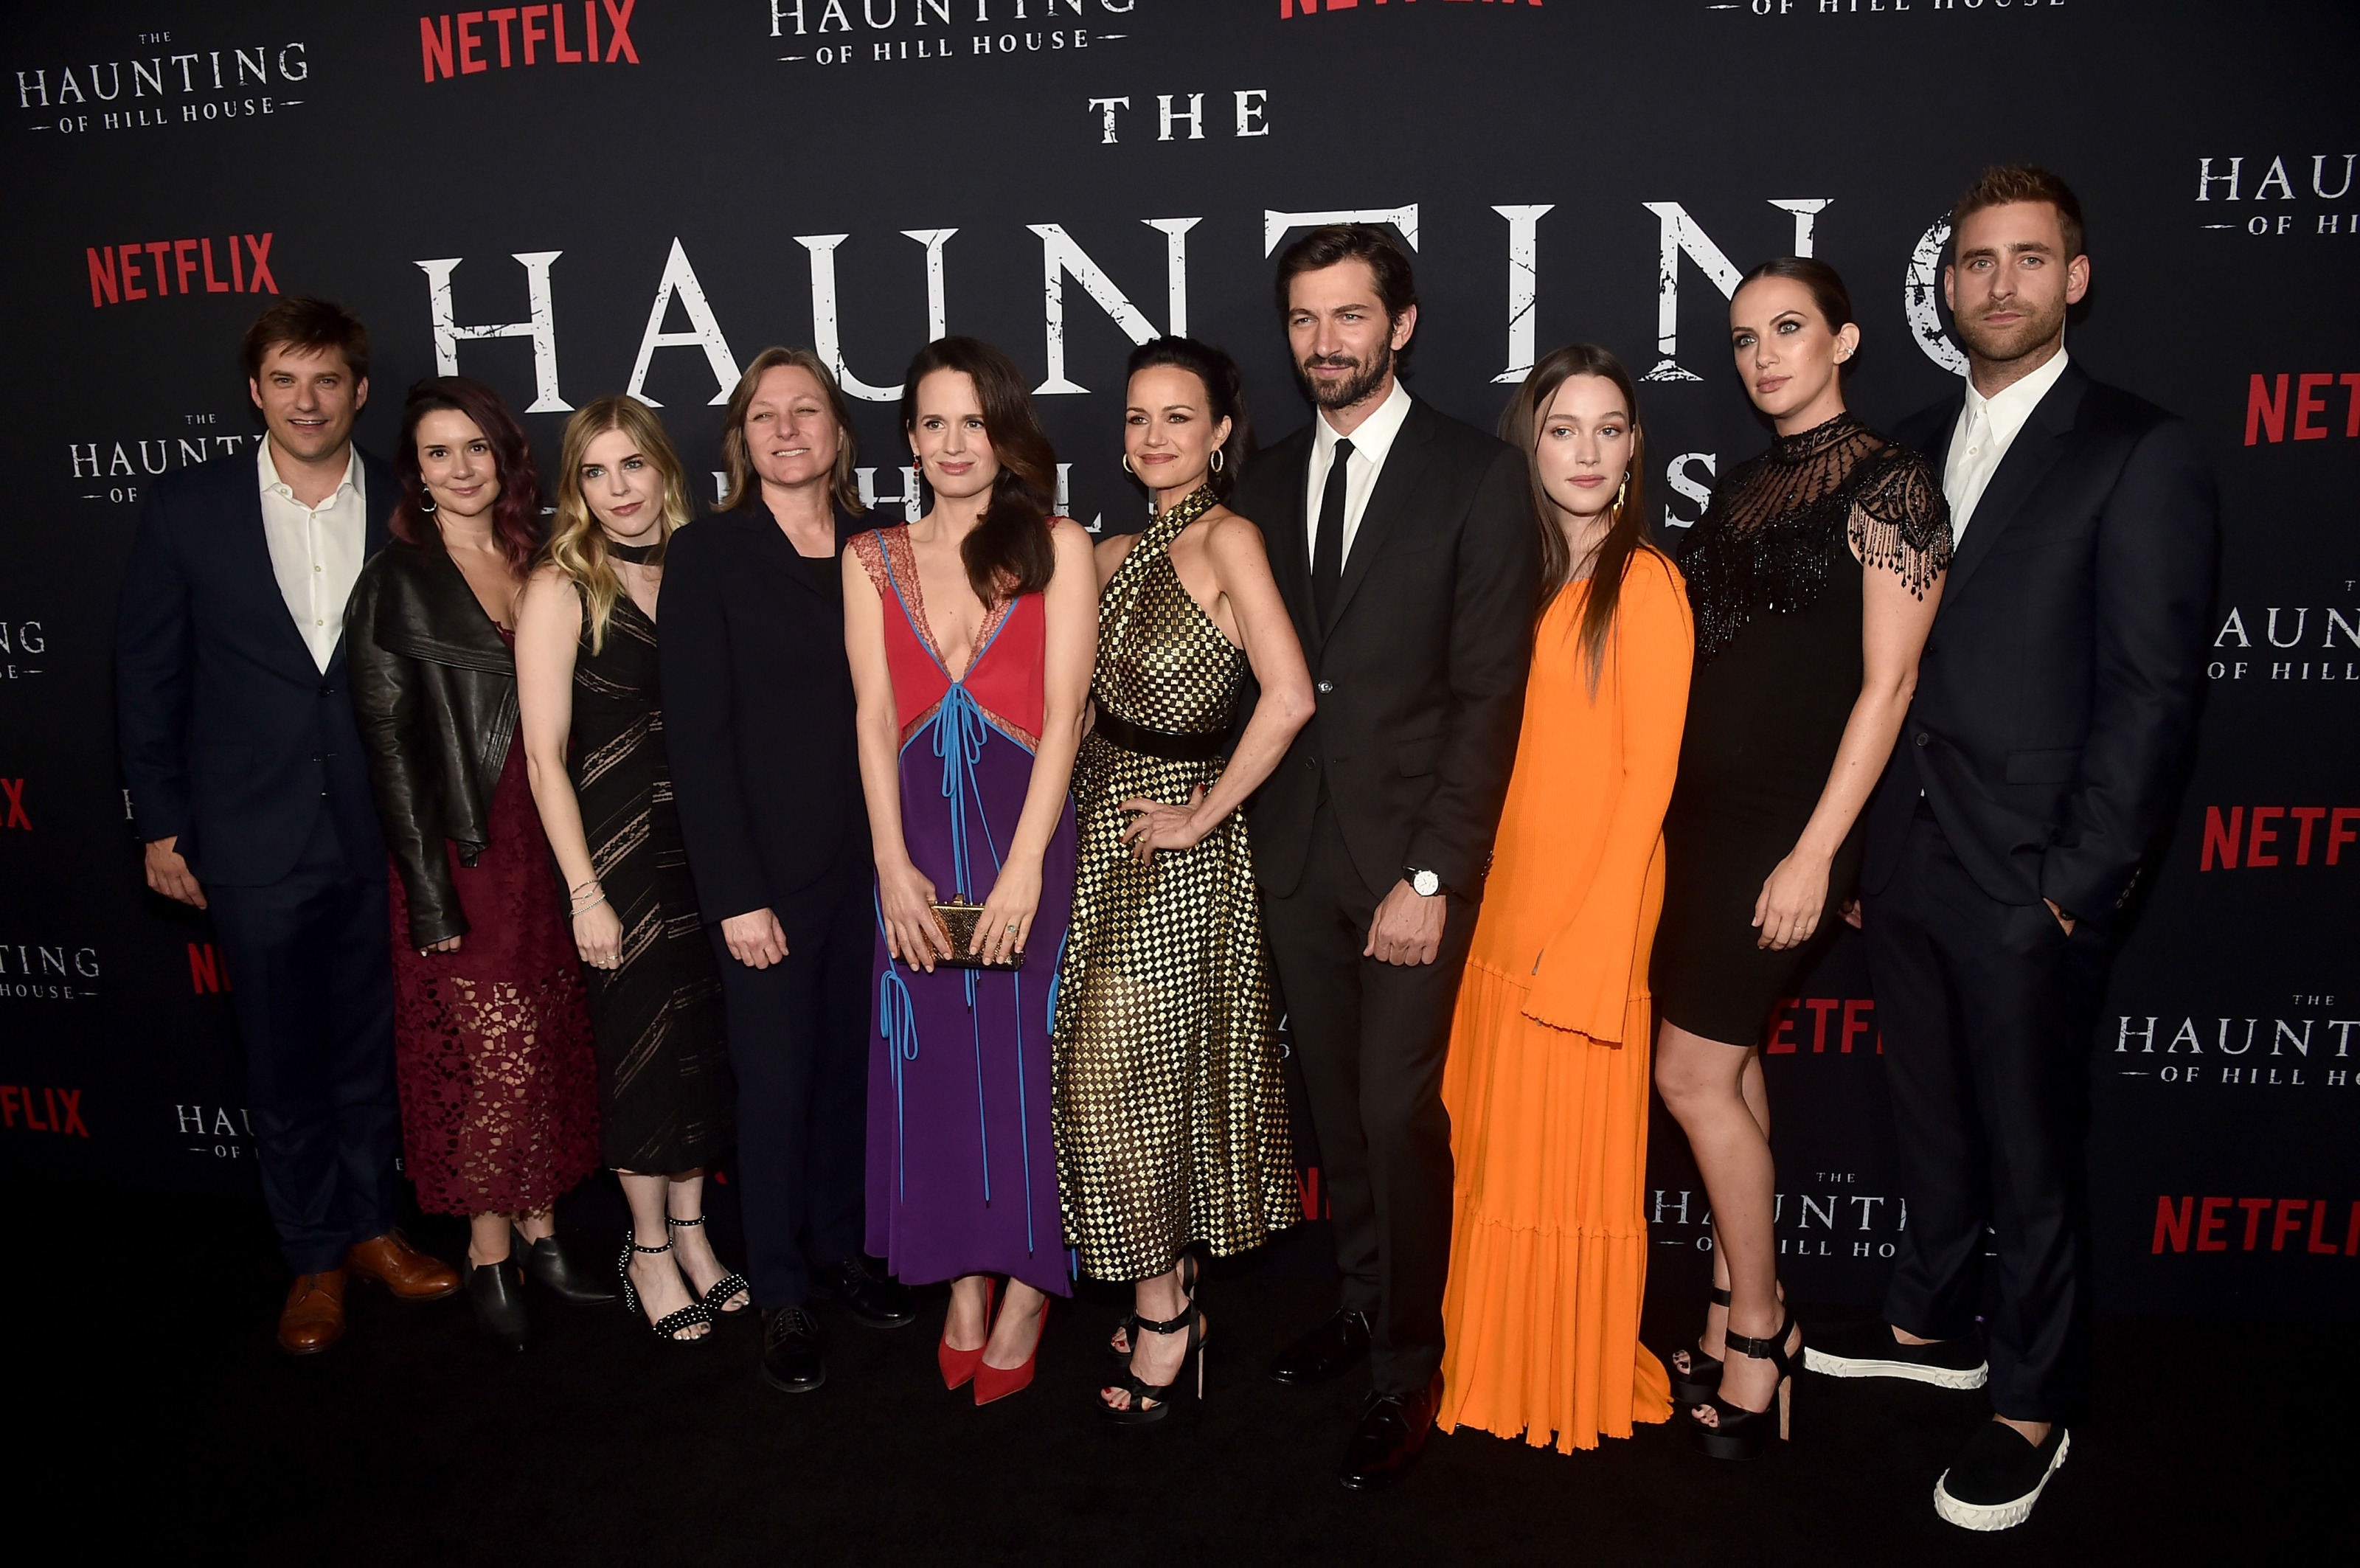 Cast of the haunting of hill house